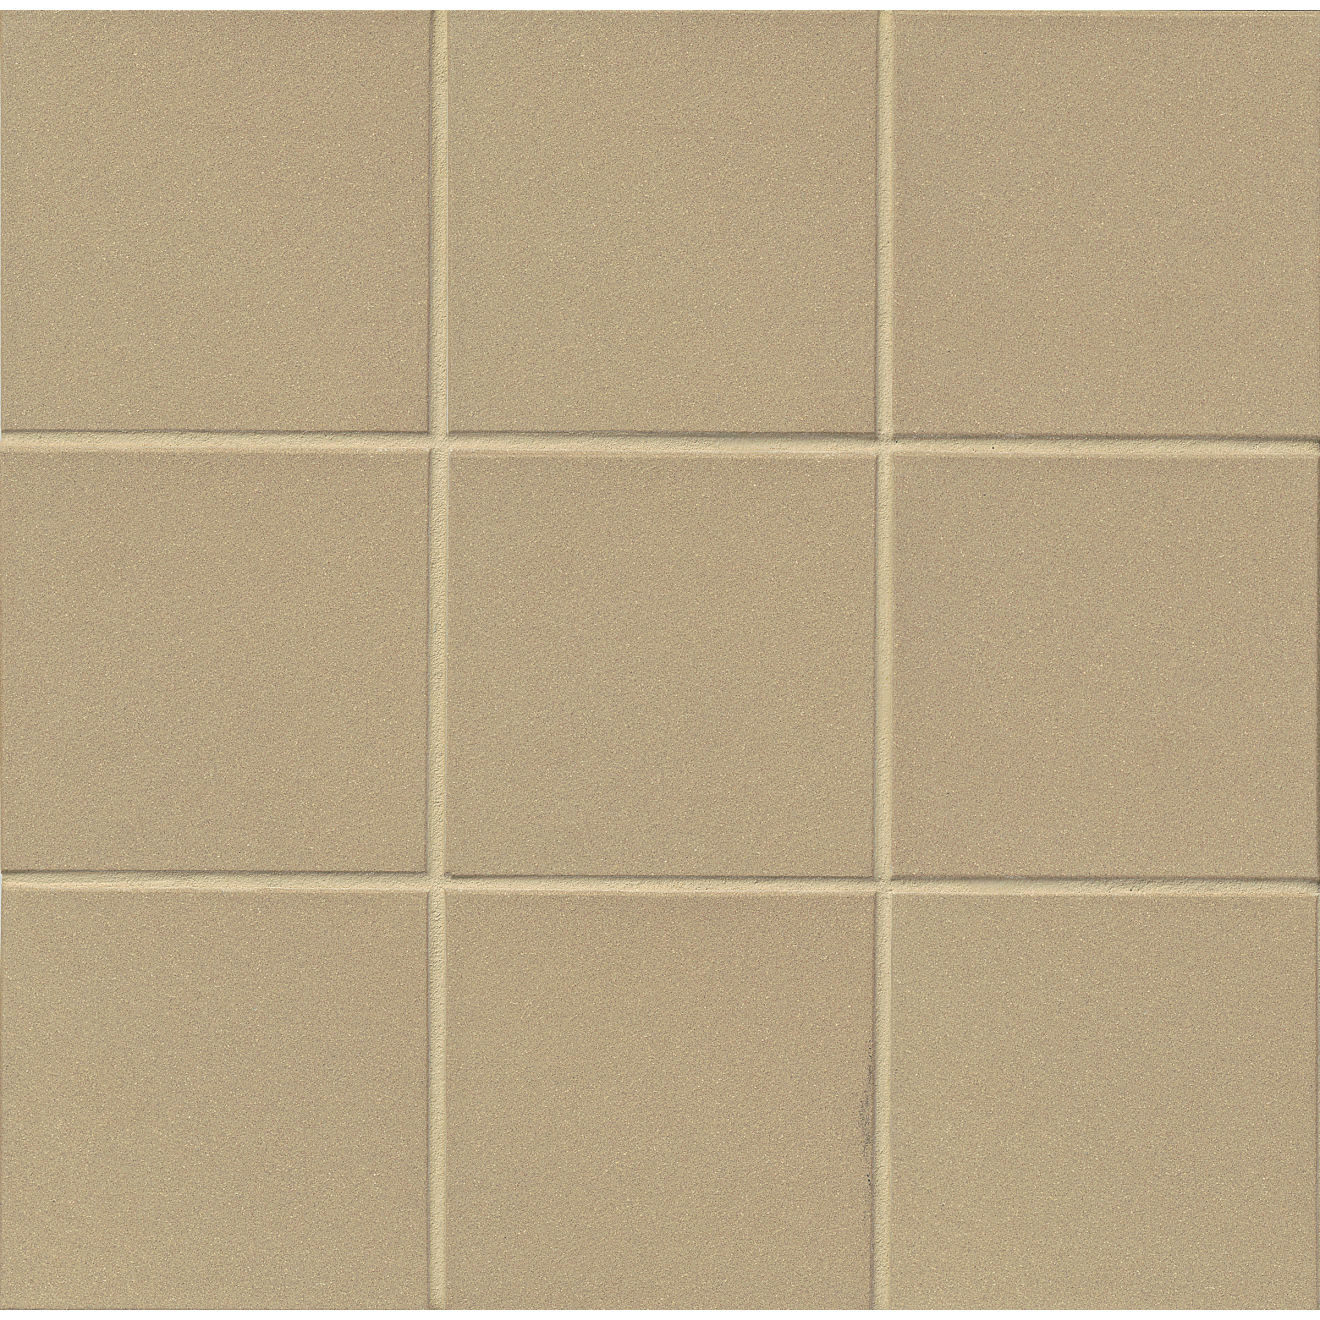 Metropolitan 6 X 6 Floor Wall Tile In Buckskin